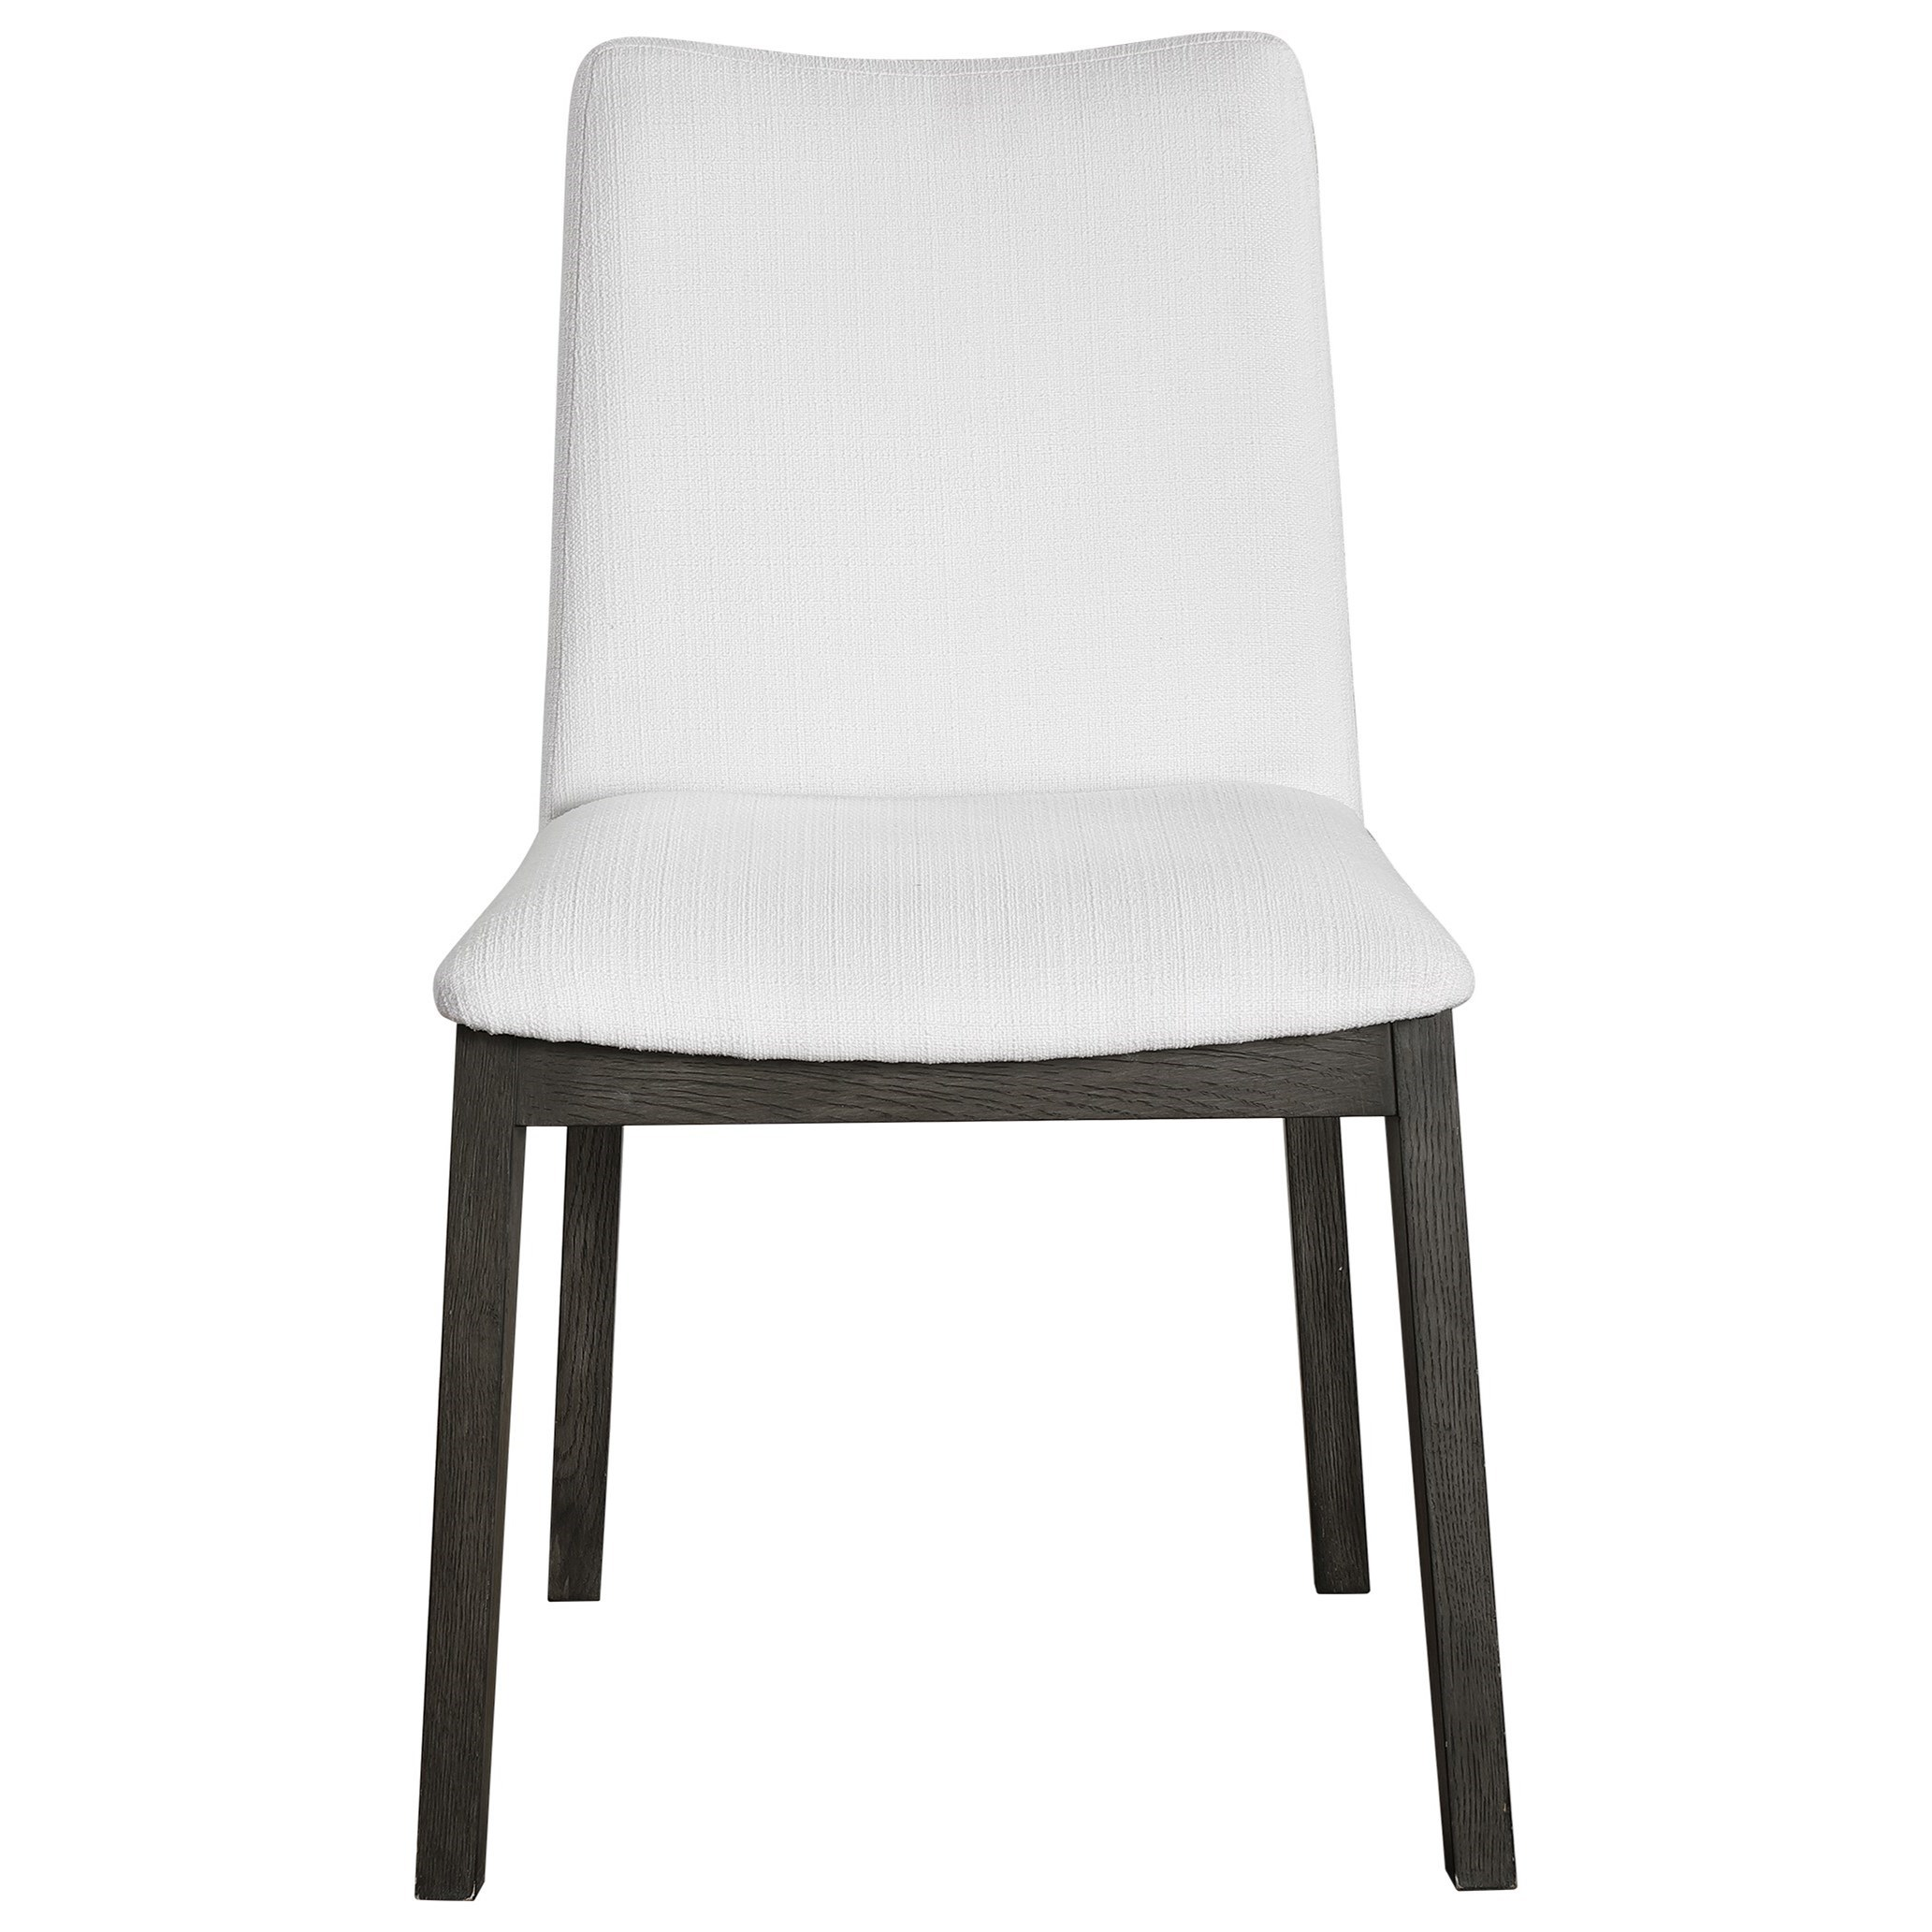 Accent Furniture - Accent Chairs Delano White Armless Chair S/2 by Uttermost at Dunk & Bright Furniture